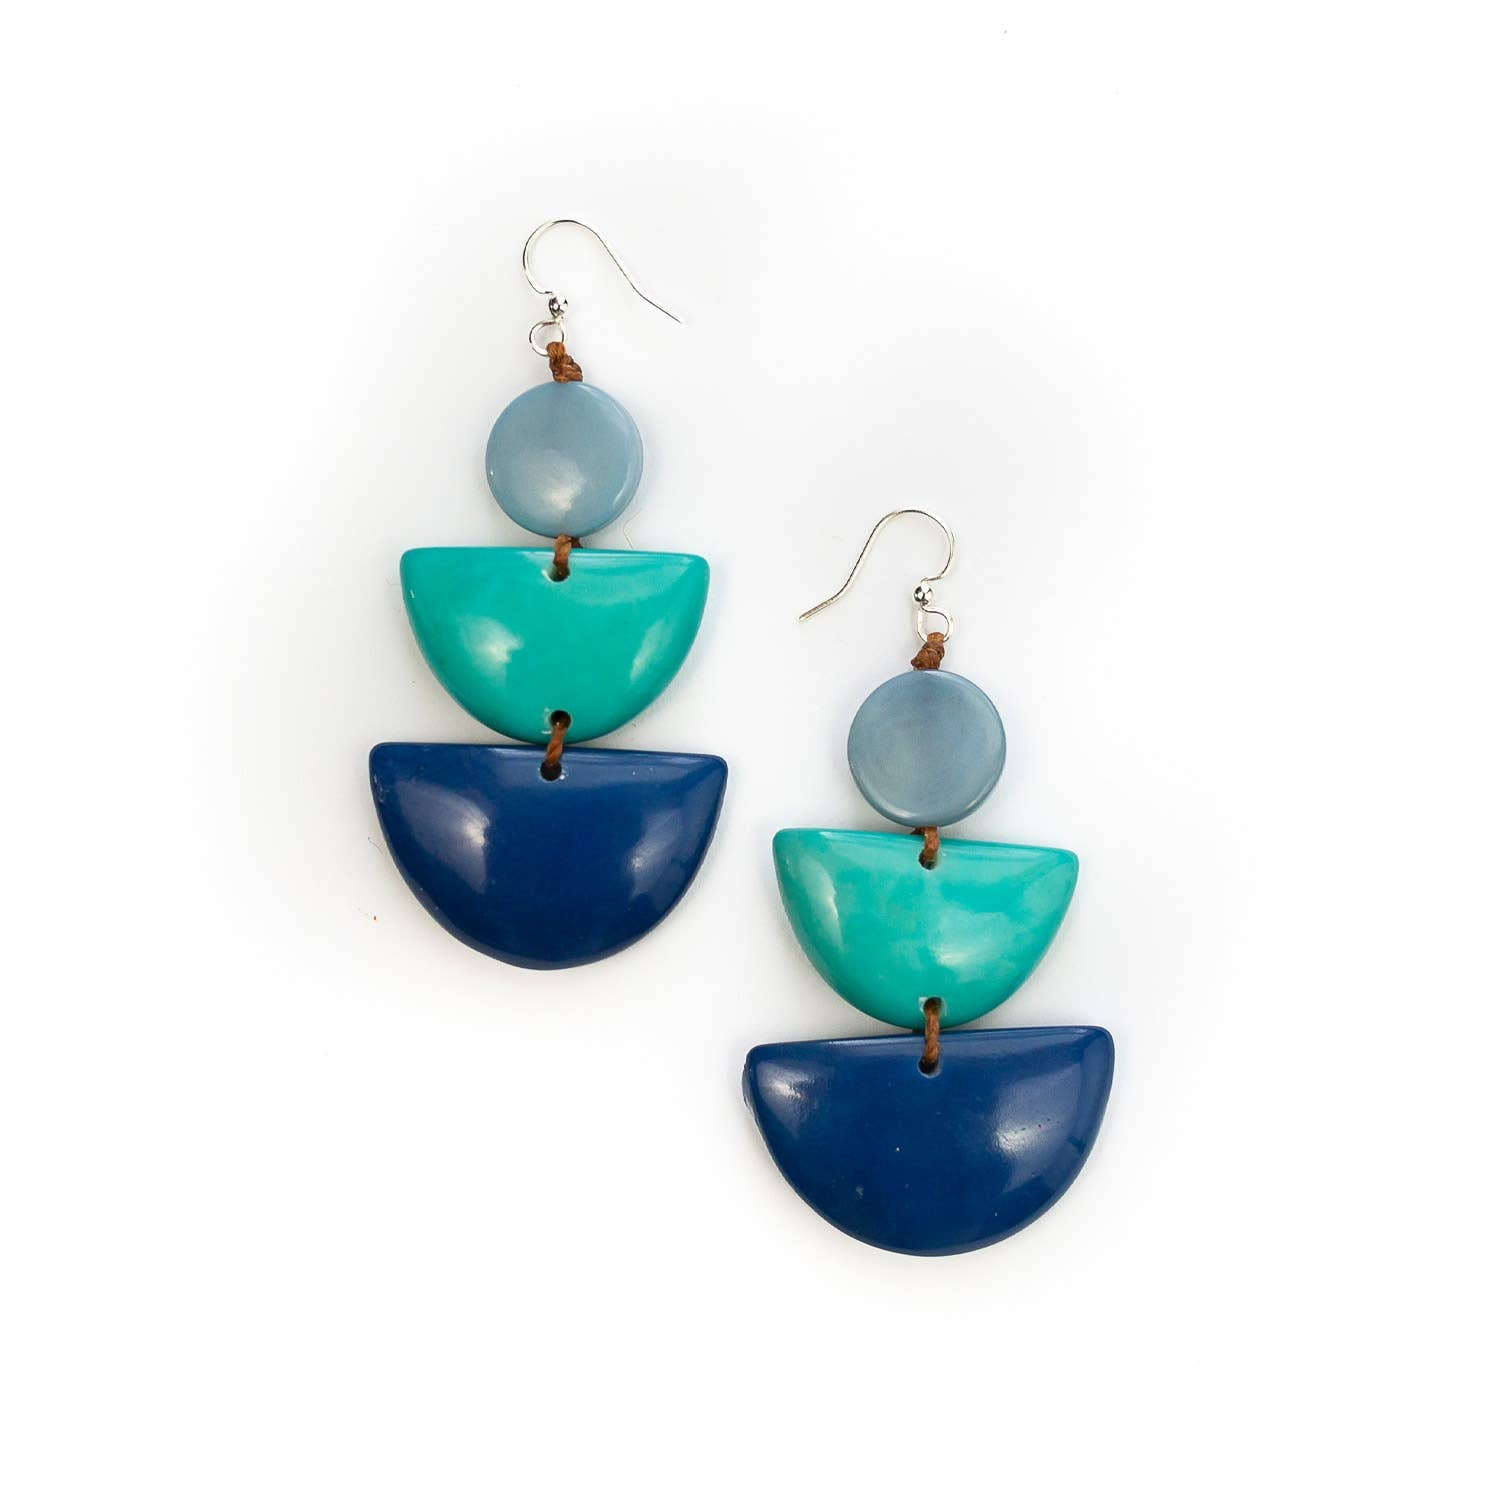 Divina Earrings